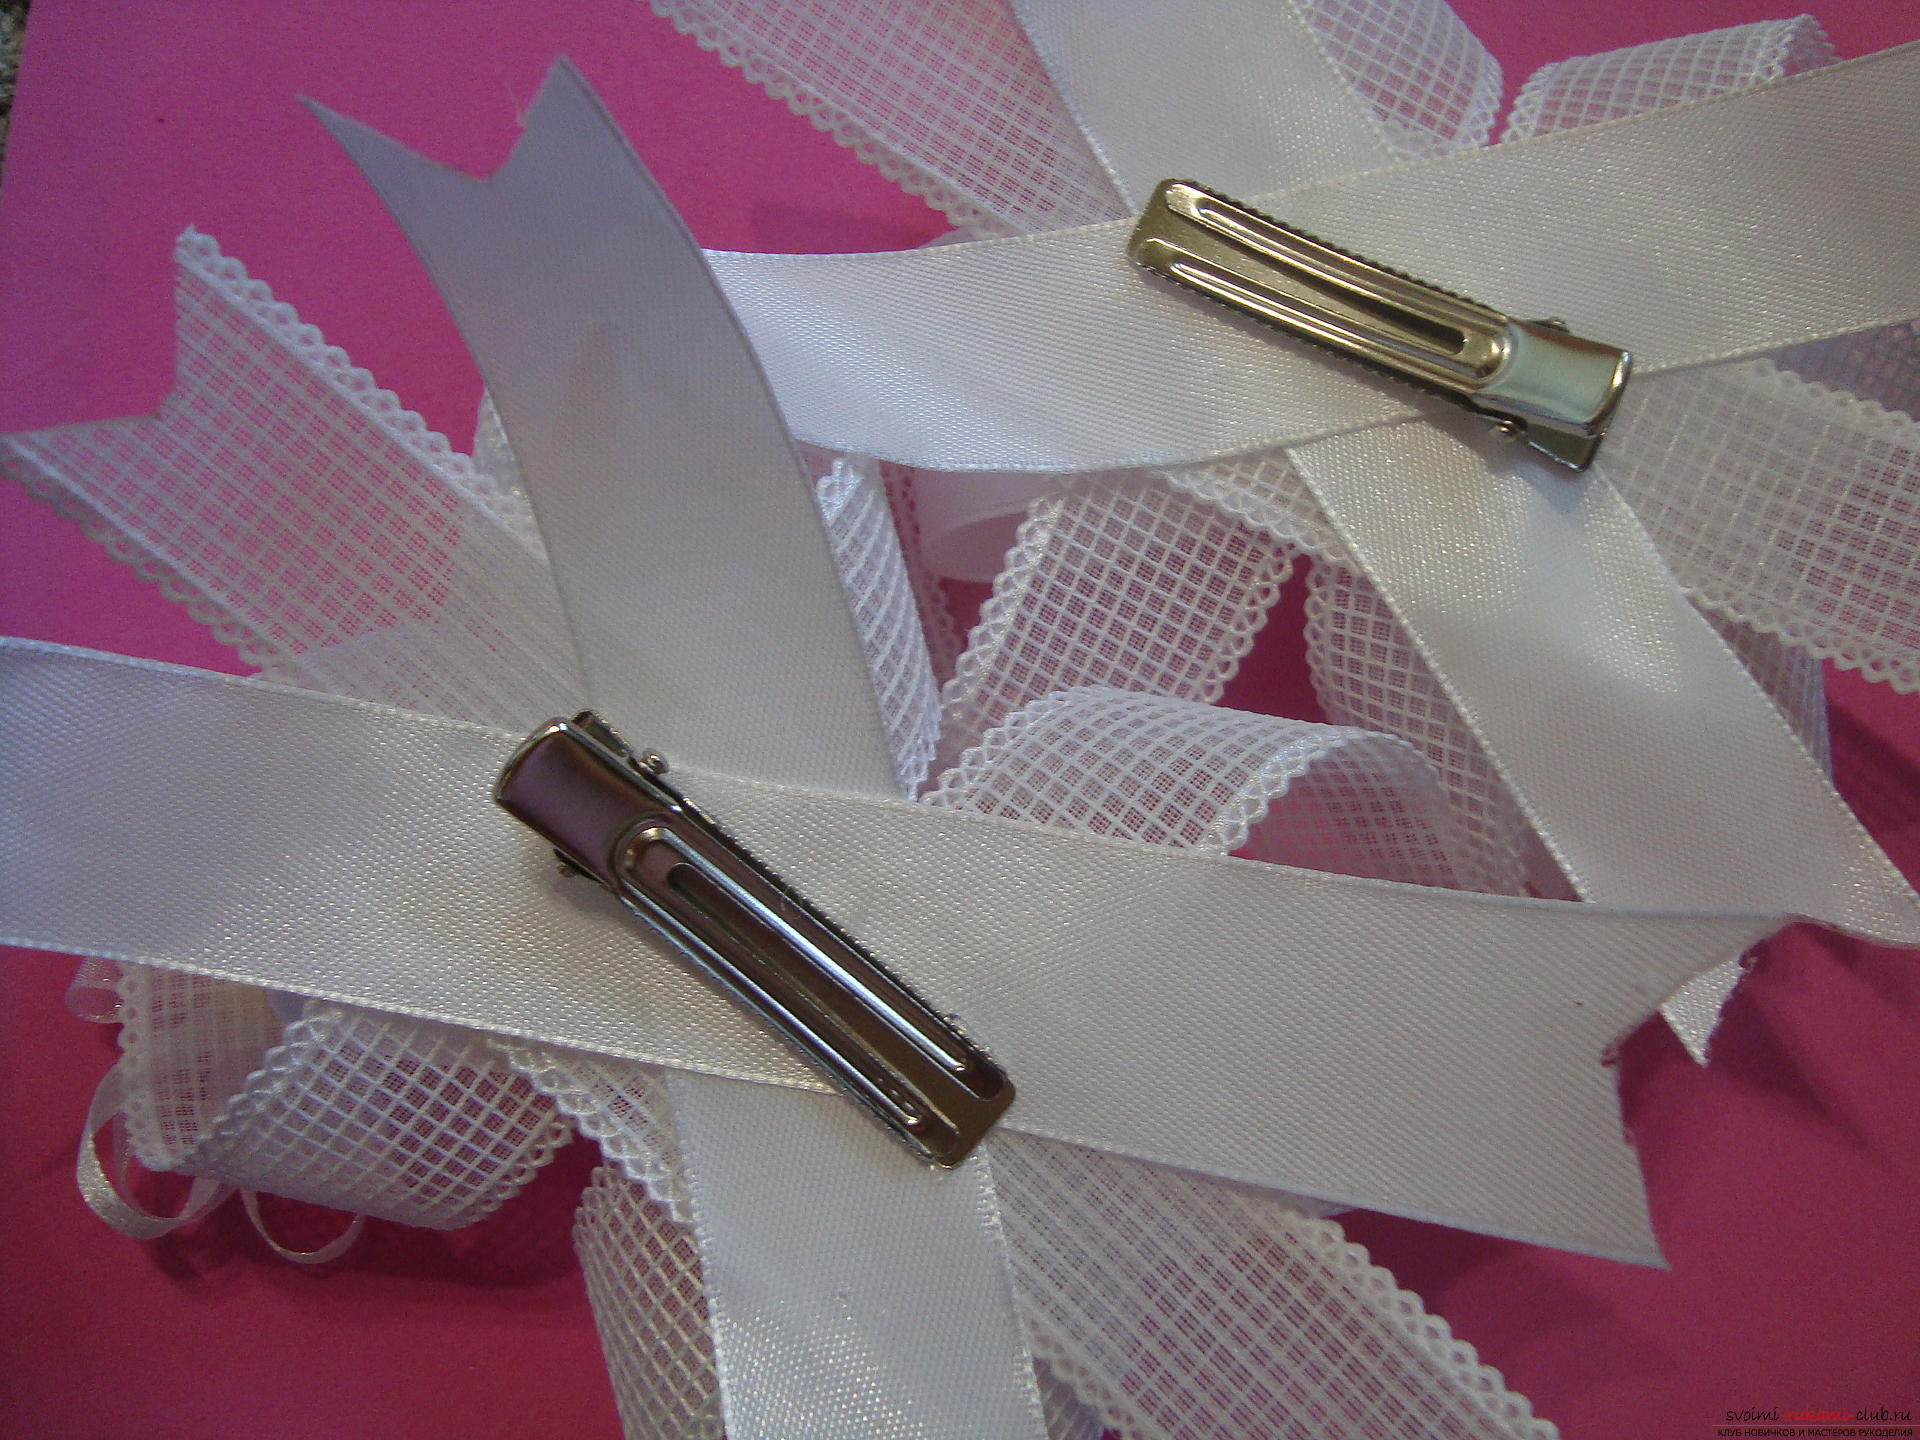 Step-by-step guide to making bows by September 1 for schoolgirls describing the steps and photos. Photo number 20